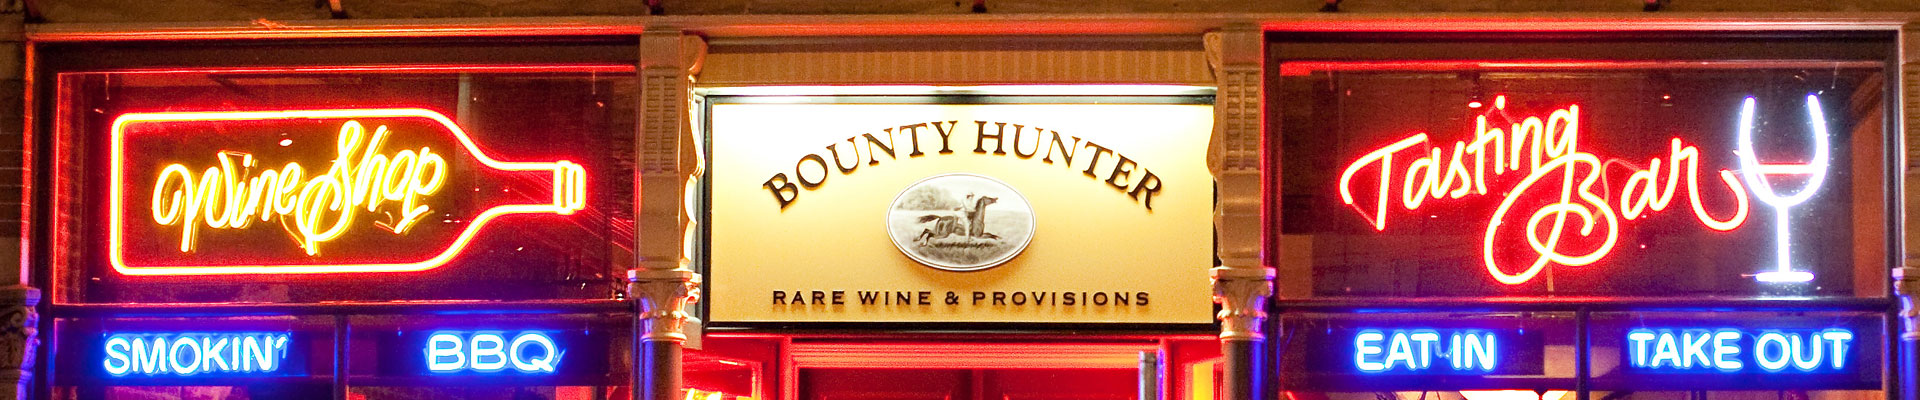 Bounty Hunter Wine Bar & Smokin' BBQ Take Out